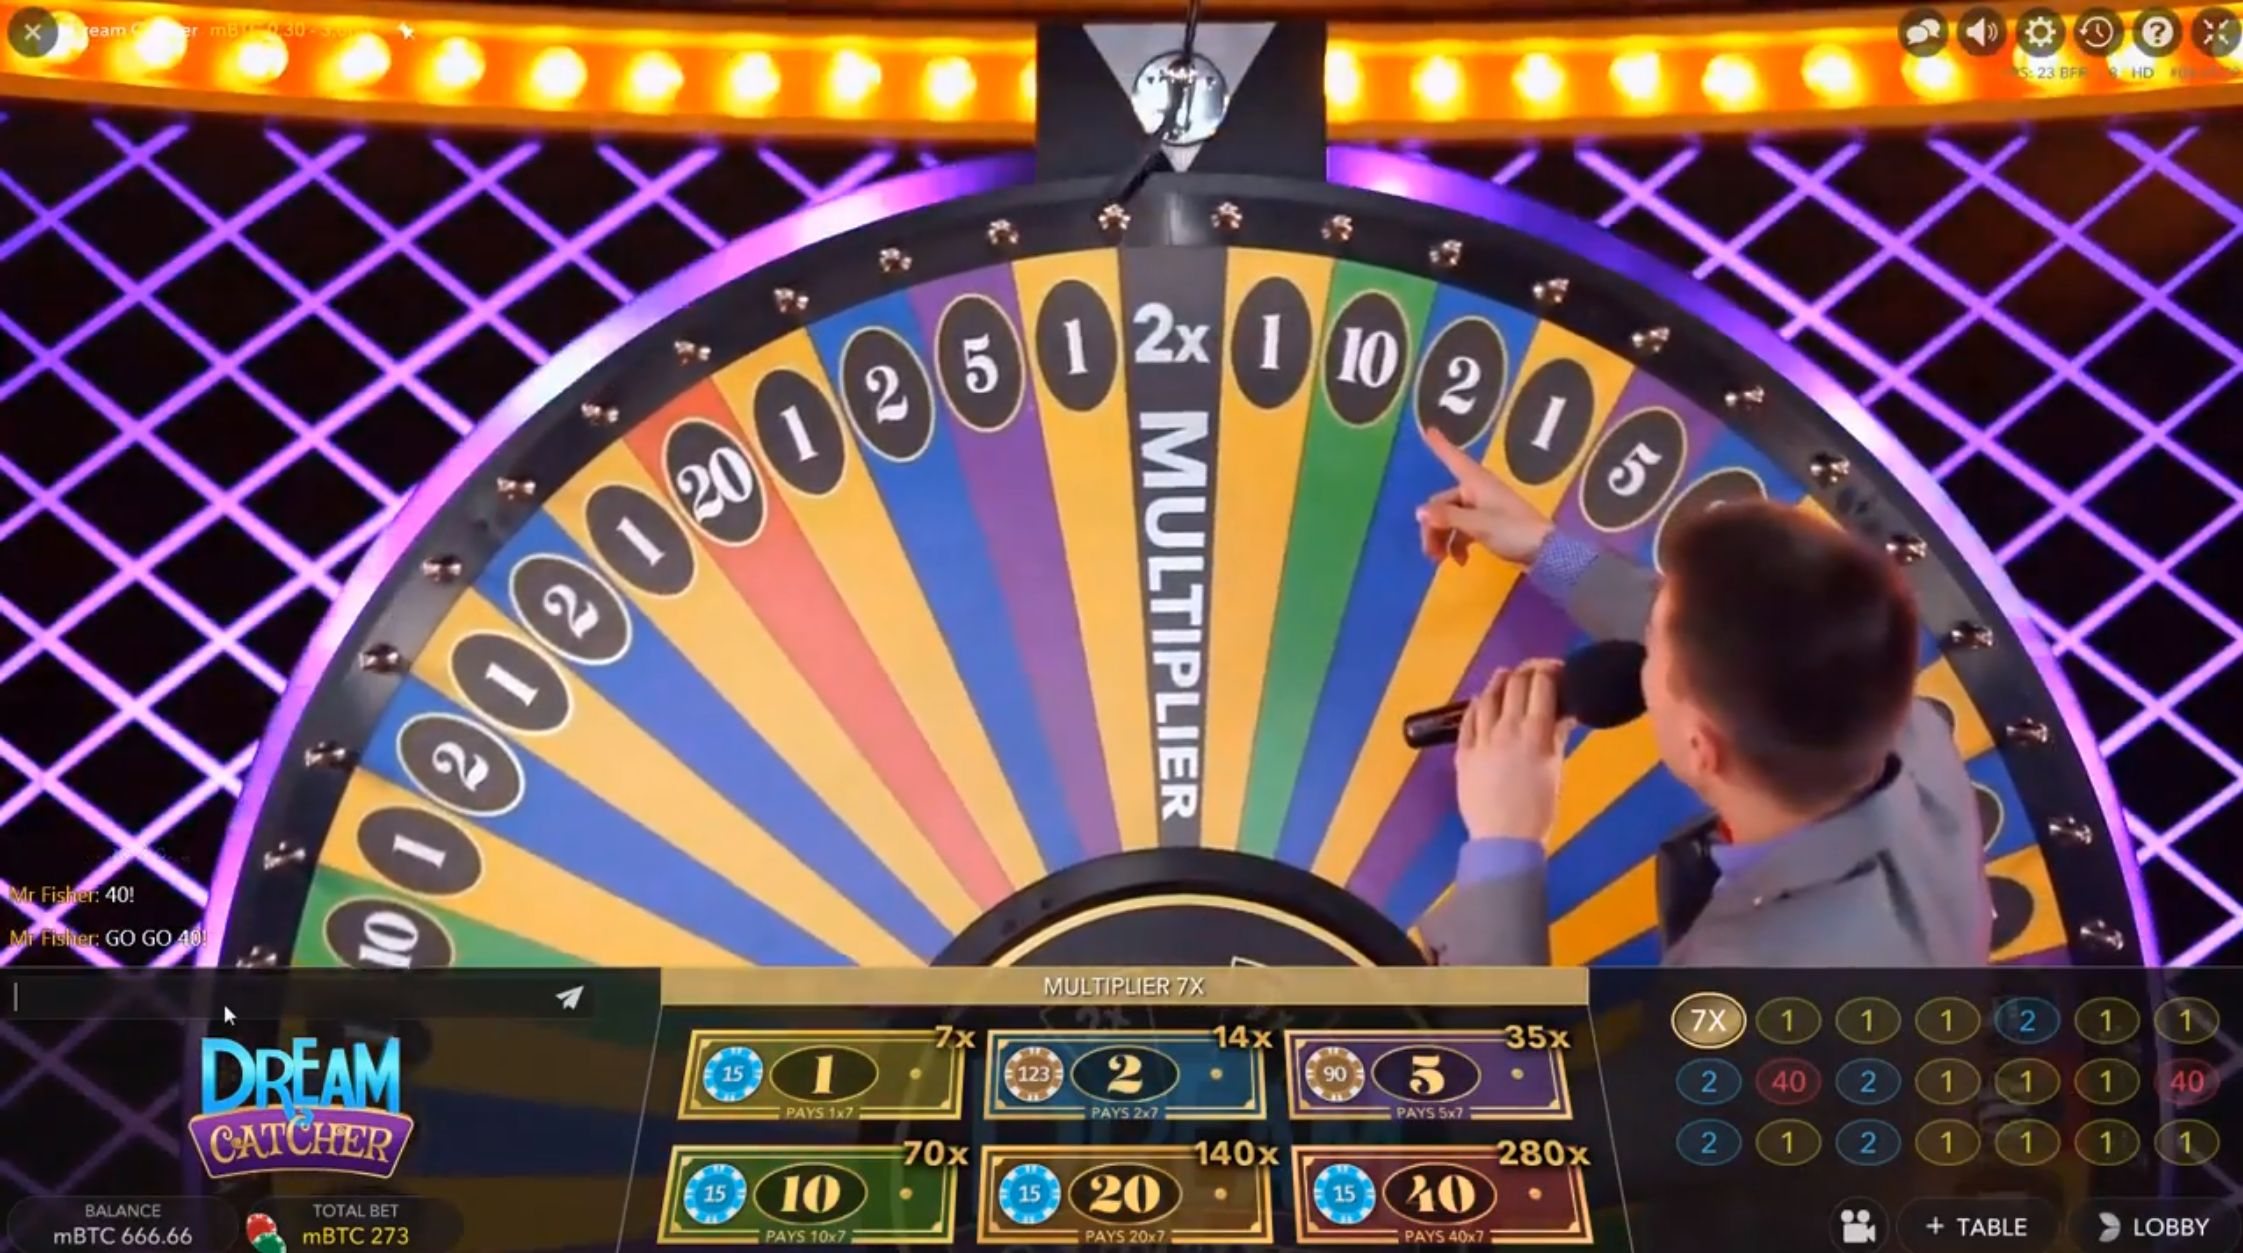 money wheel casino game russian poker online live casino sites